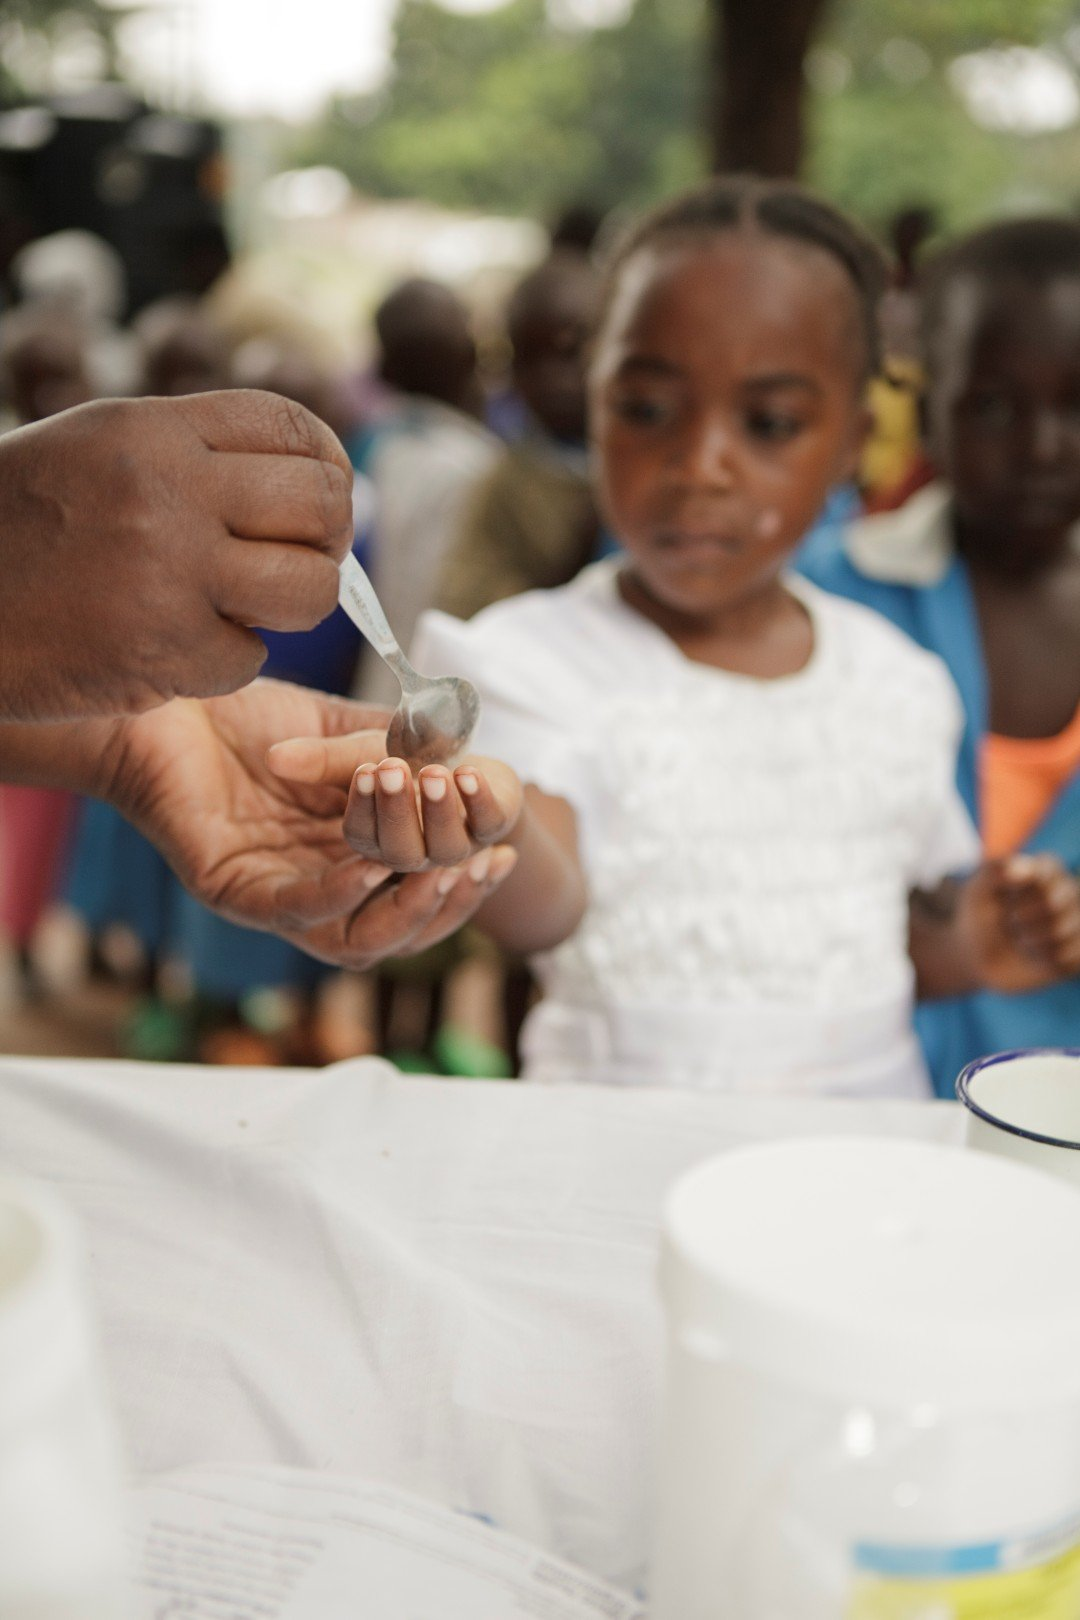 The Evidence for Impacts of Deworming Grows